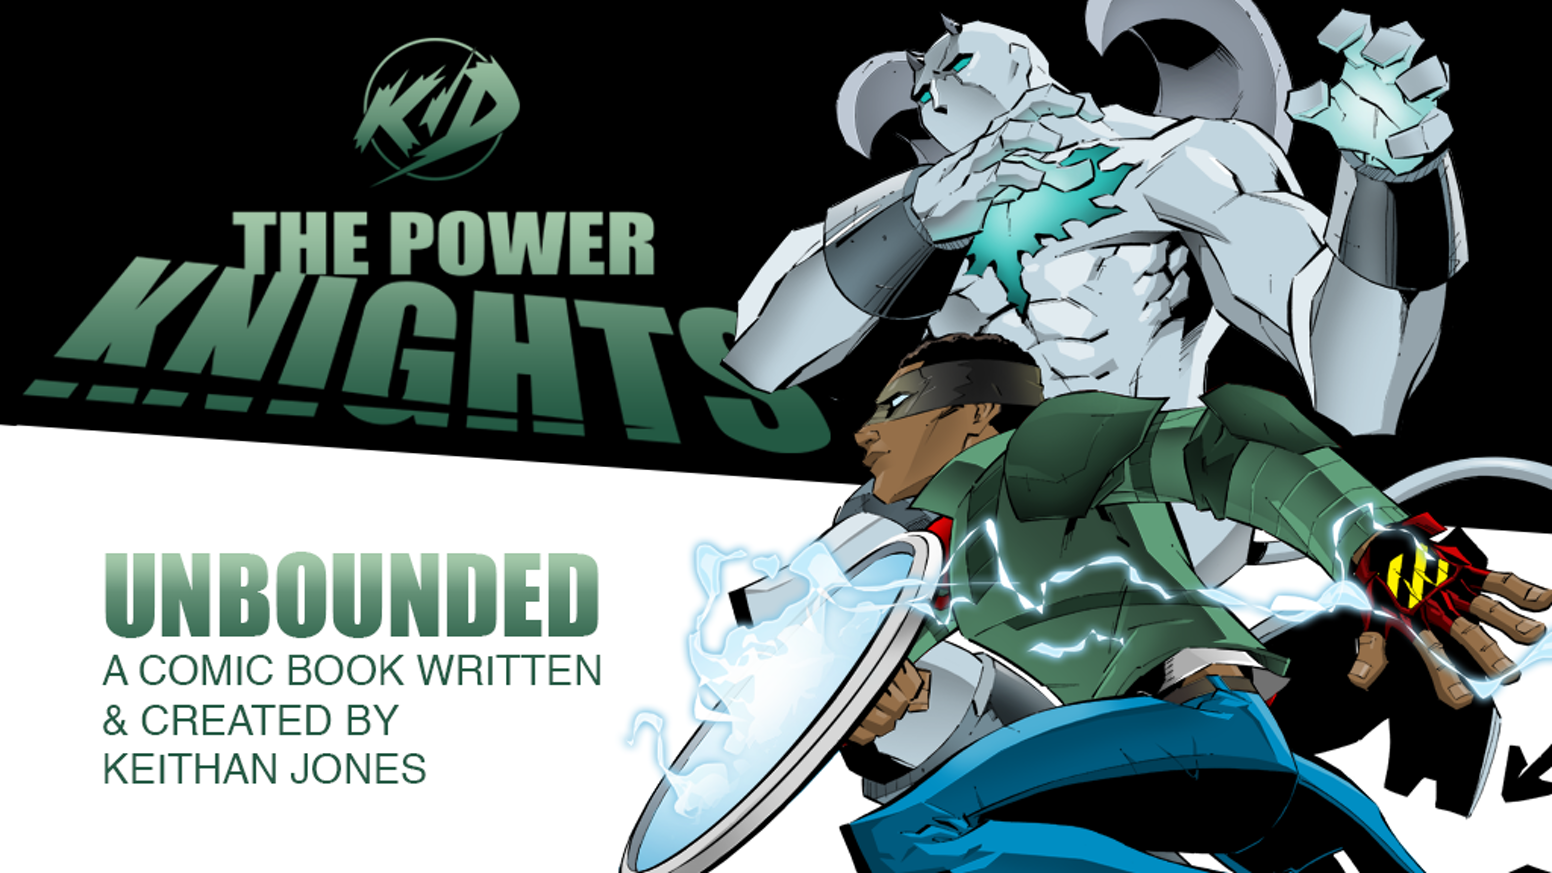 THE POWER KNIGHTS: UNBOUNDED by Keithan Jones — Kickstarter